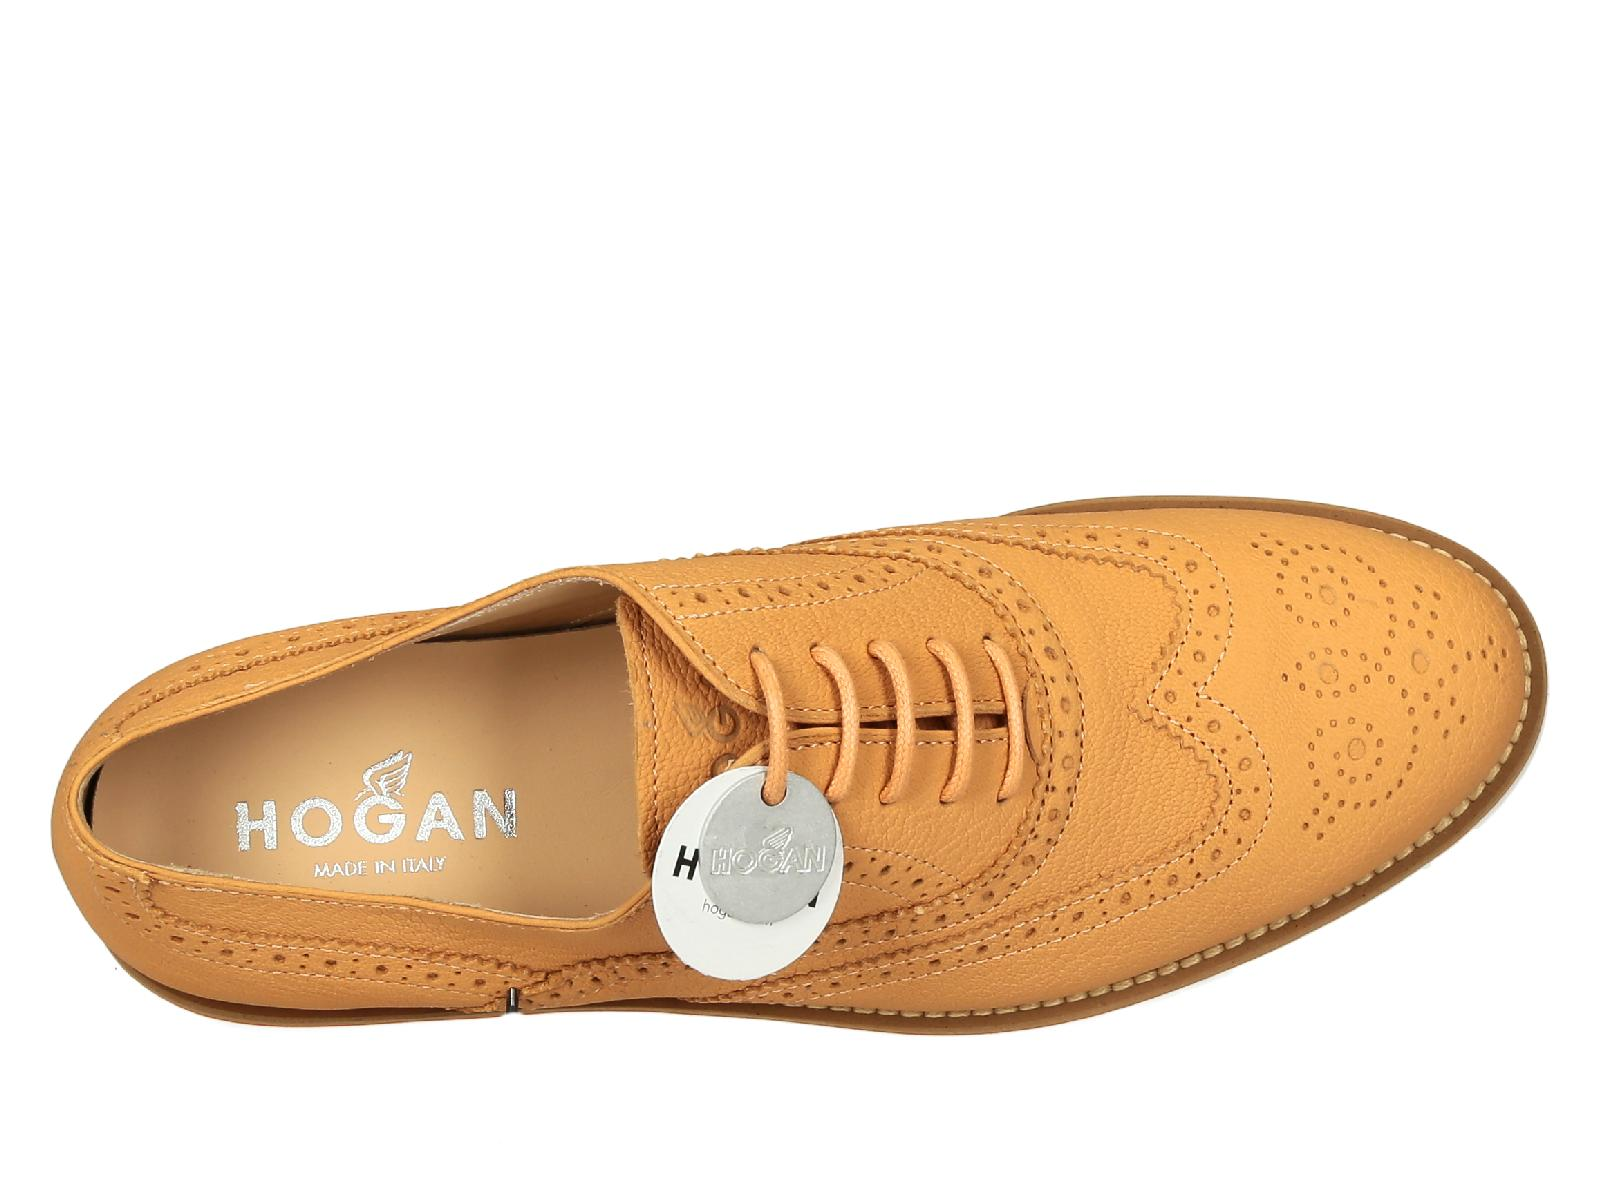 Hogan Italy Hogan Women 39s Orange Leather Brogue Oxfords Lace Up Shoes